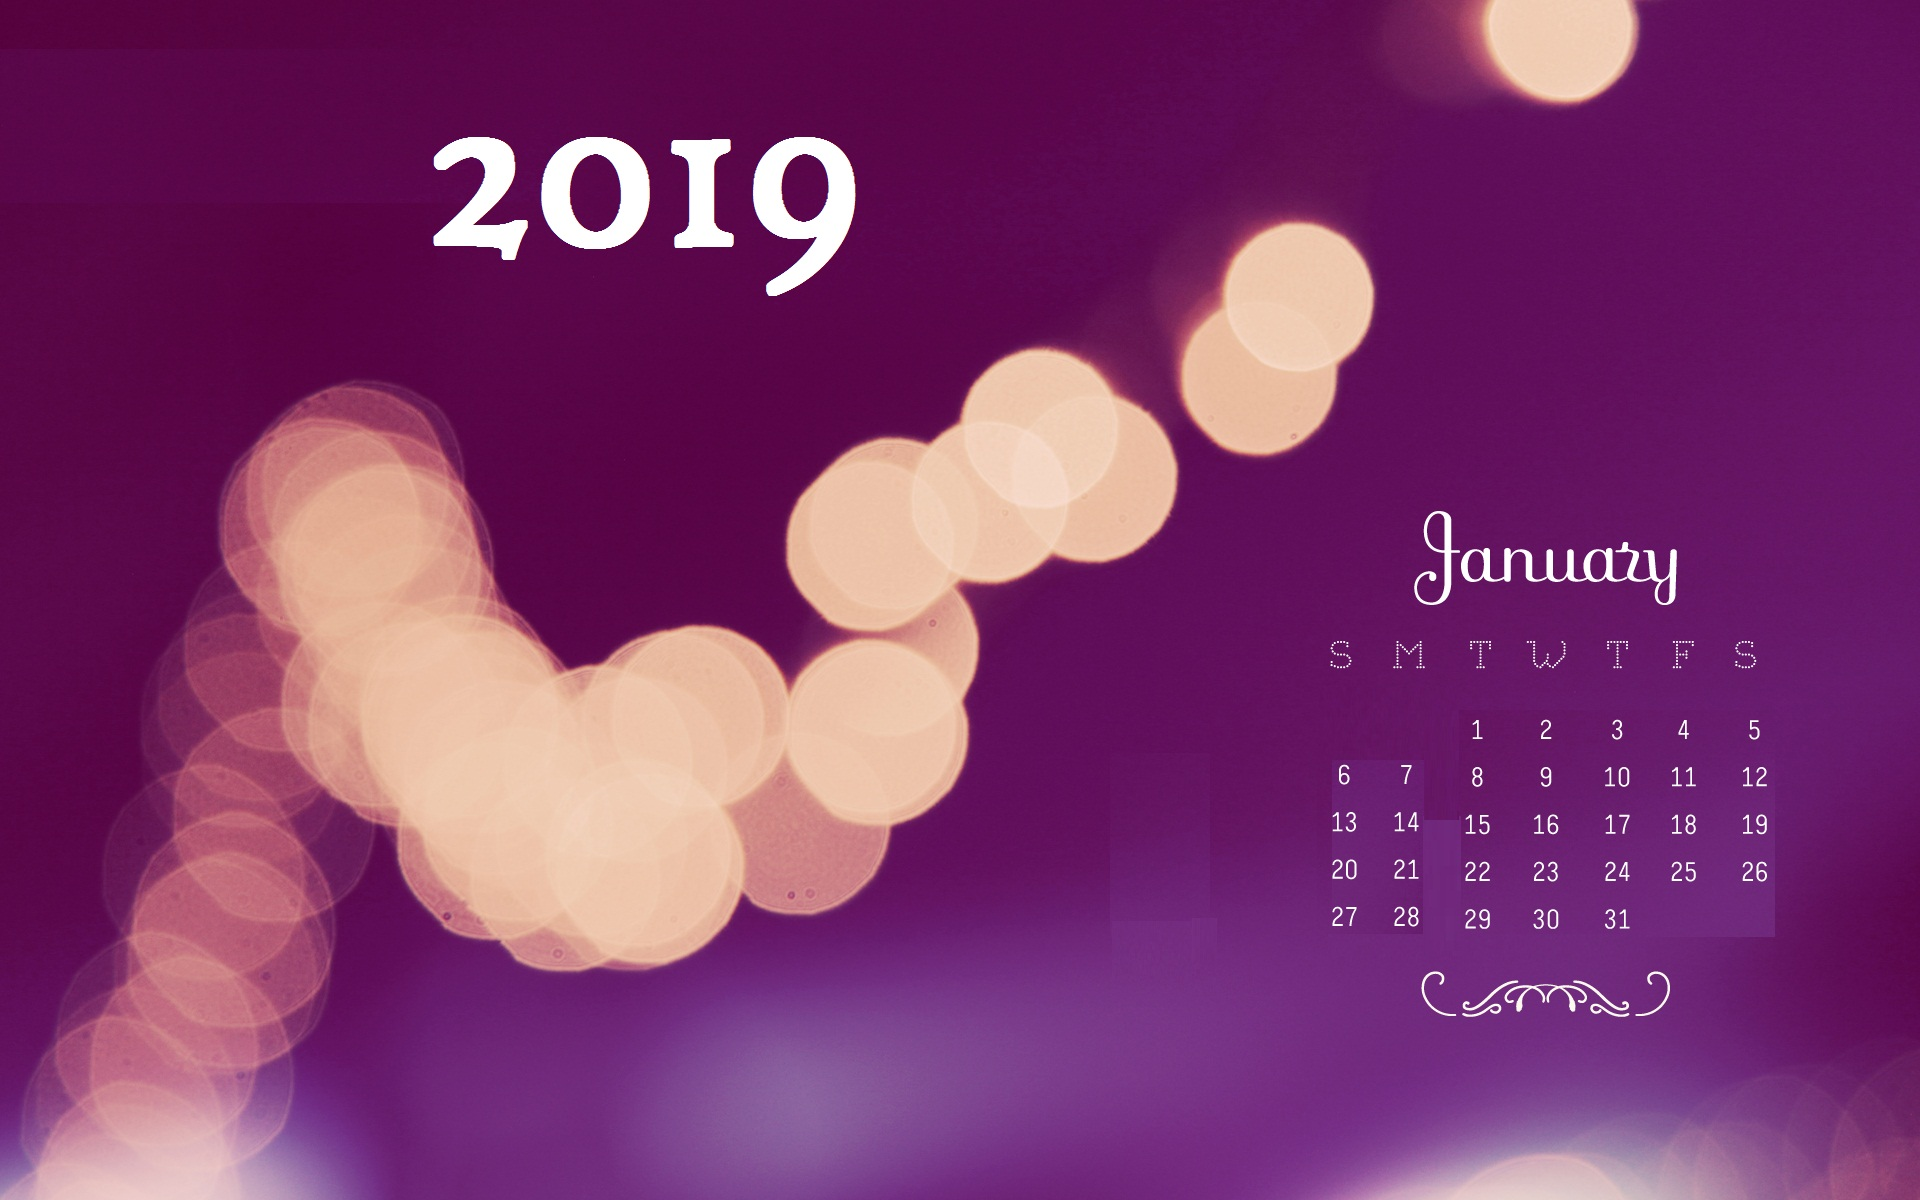 Desktop Wallpaper January 2019 Calendar